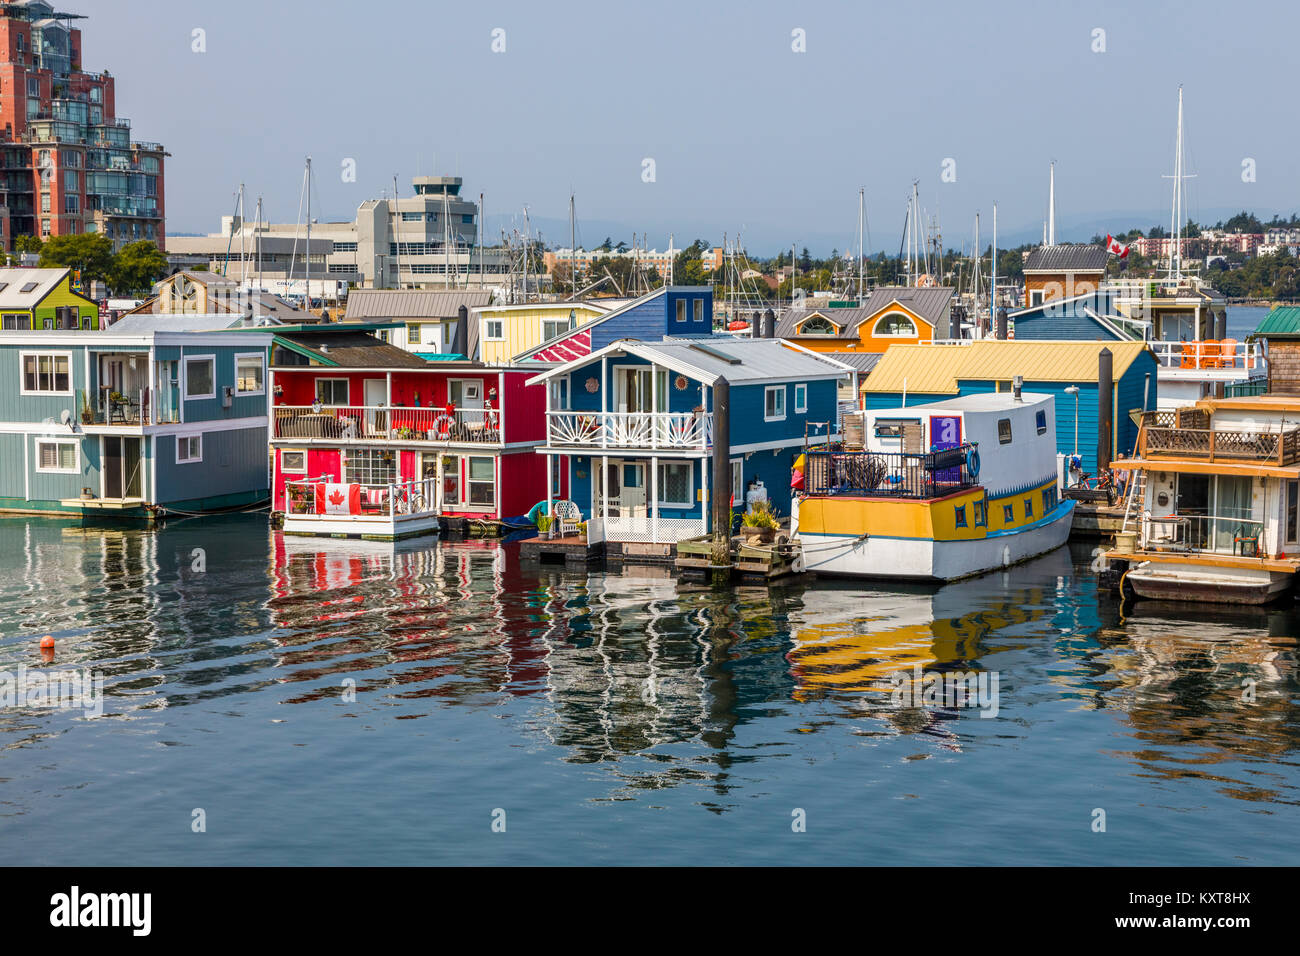 Fisherman's Wharf a colourful float home community in Victoria on Vancouver Island in British Columbia, Canada Stock Photo